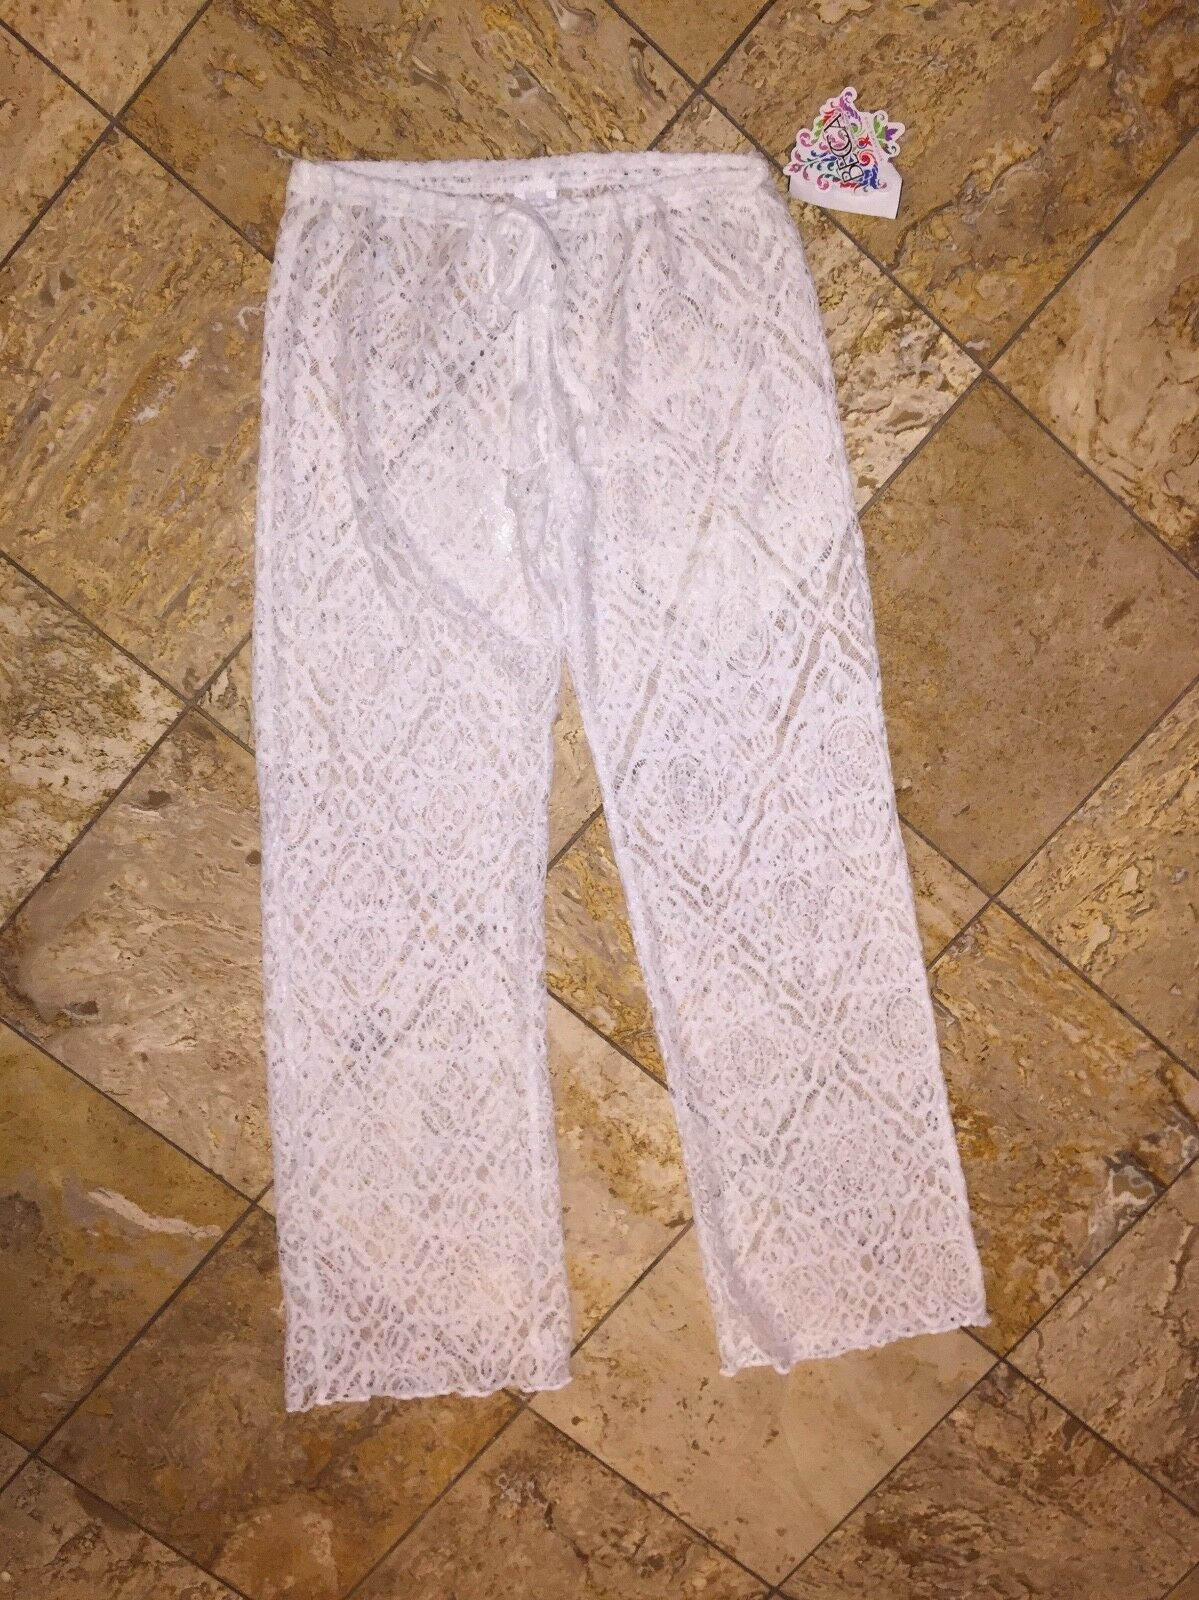 NWT  70 Becca by Rebecca Virtue White Lace Crochet Swimsuit Cover-up Pants M